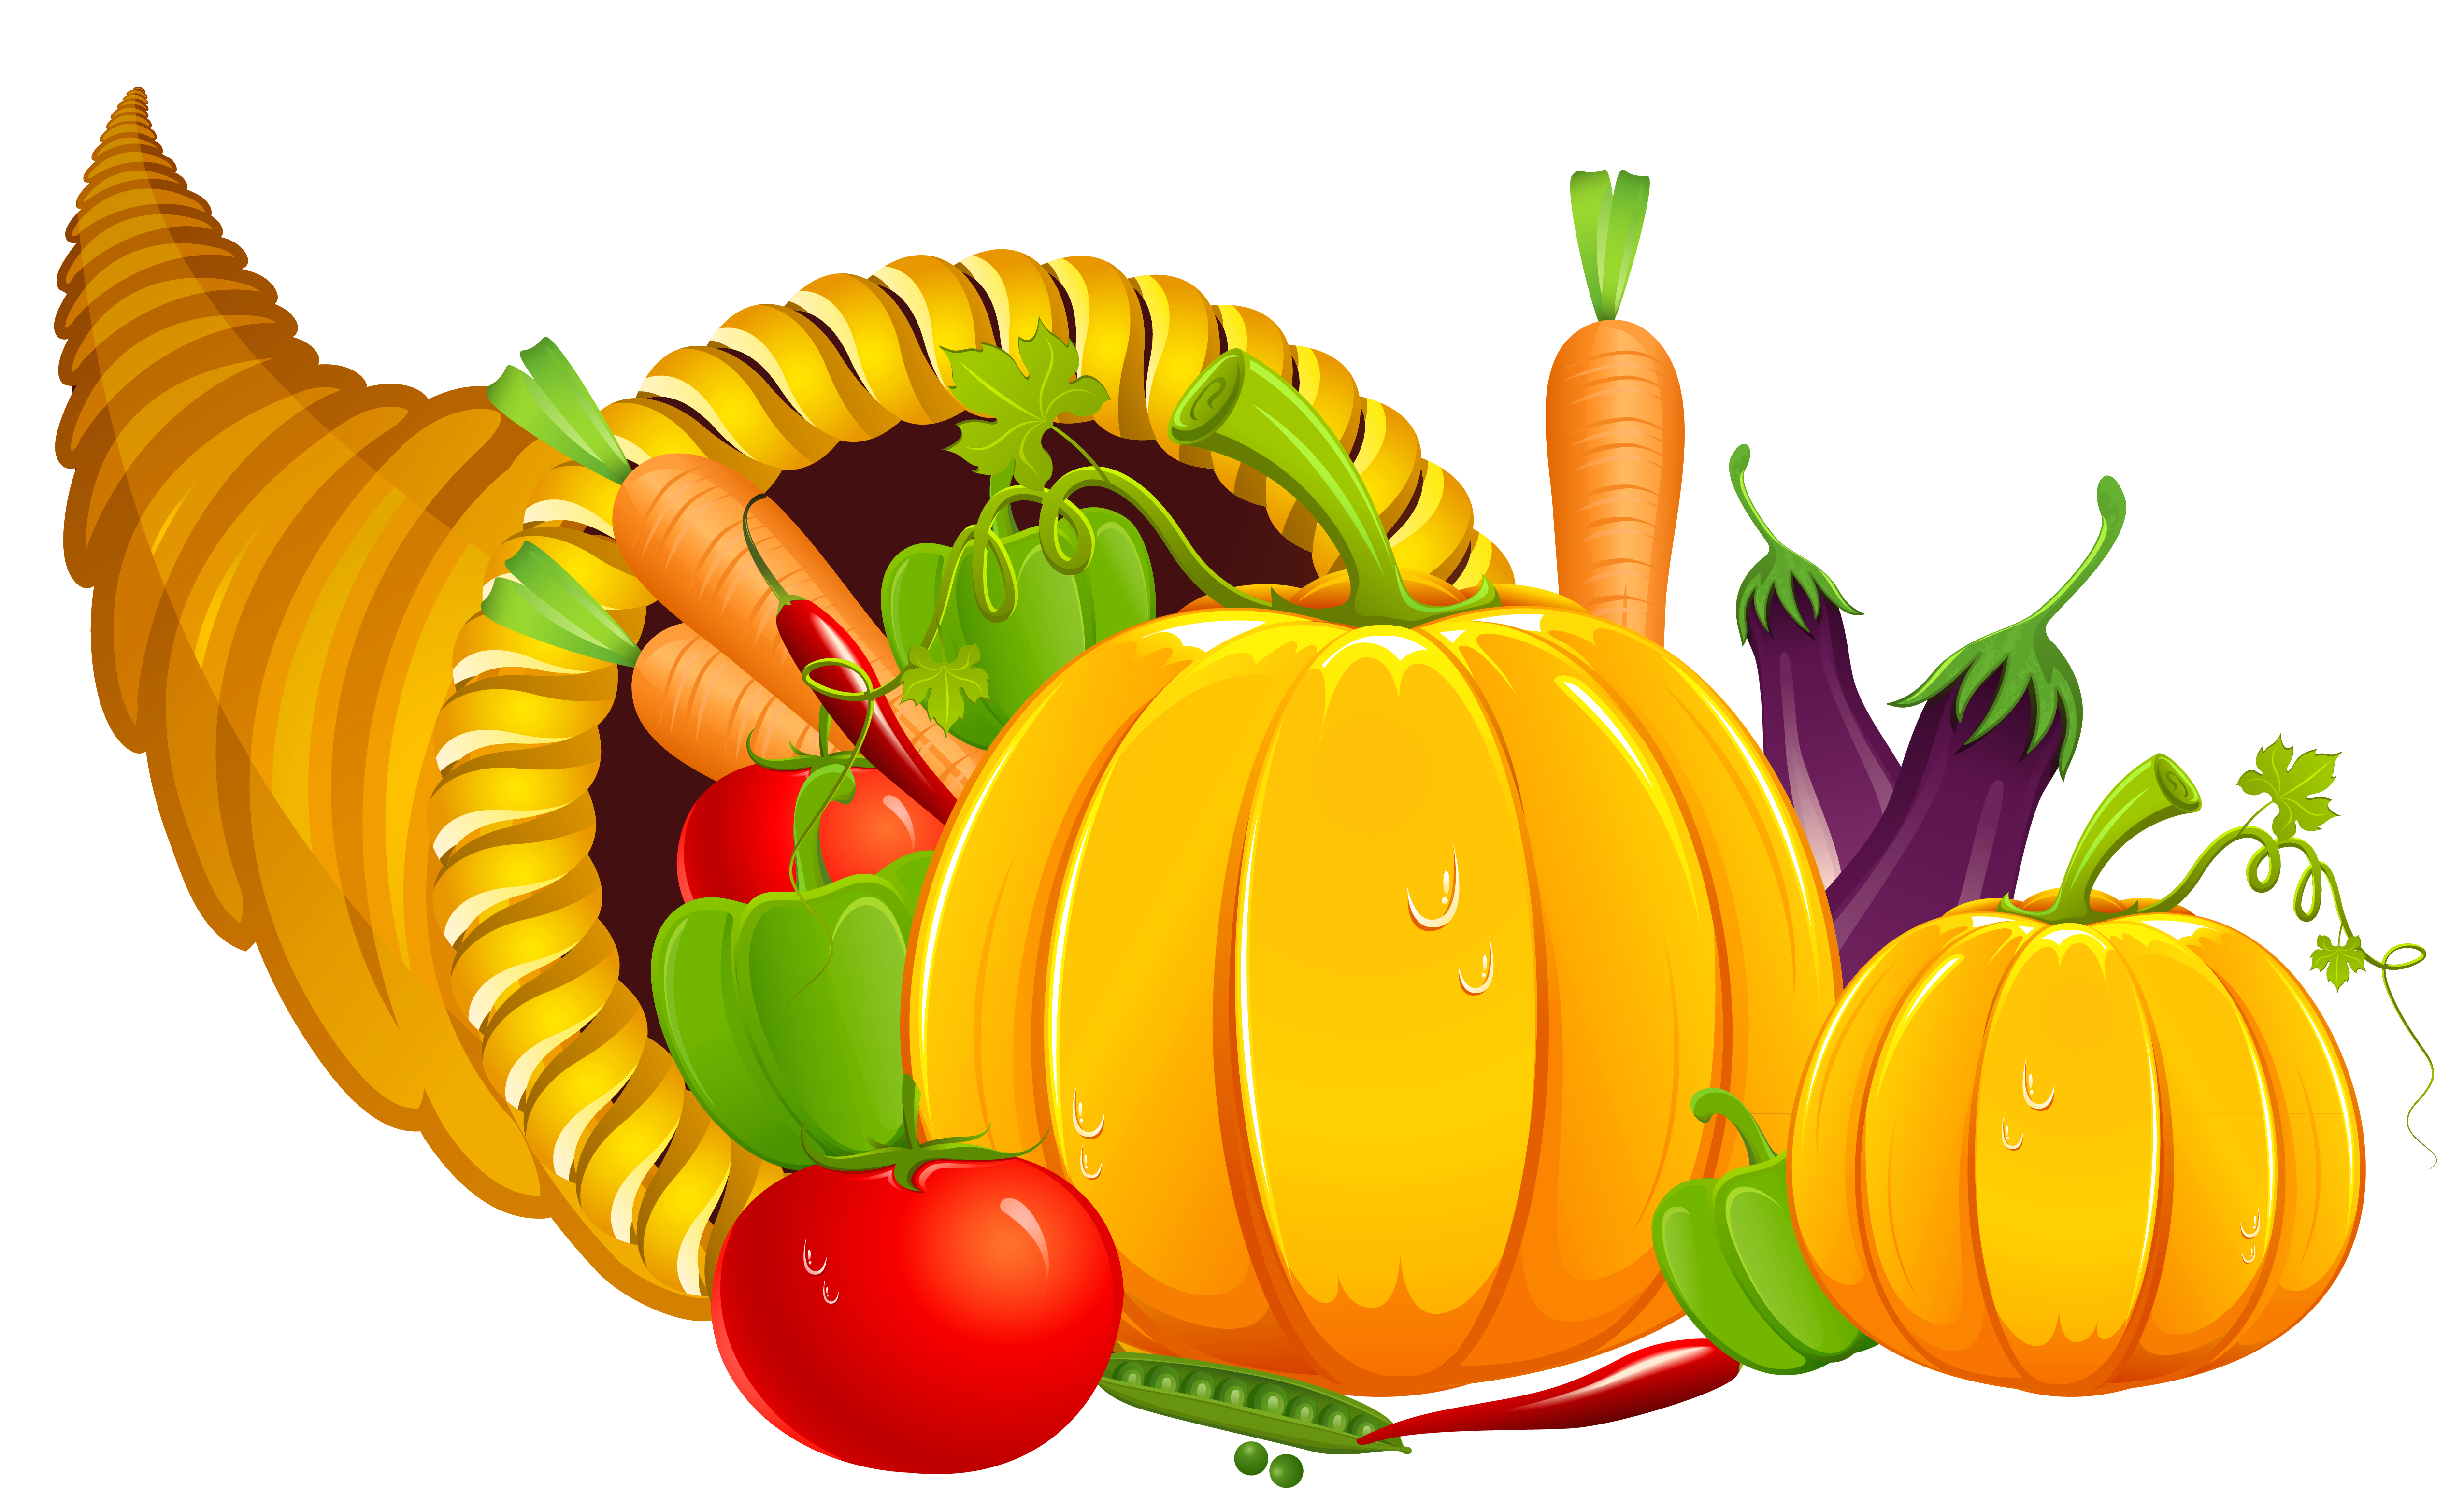 Clipart for thanksgiving vocabulary words clip art royalty free library Thanksgiving Cornucopia PNG Clipart | Gallery Yopriceville - High ... clip art royalty free library